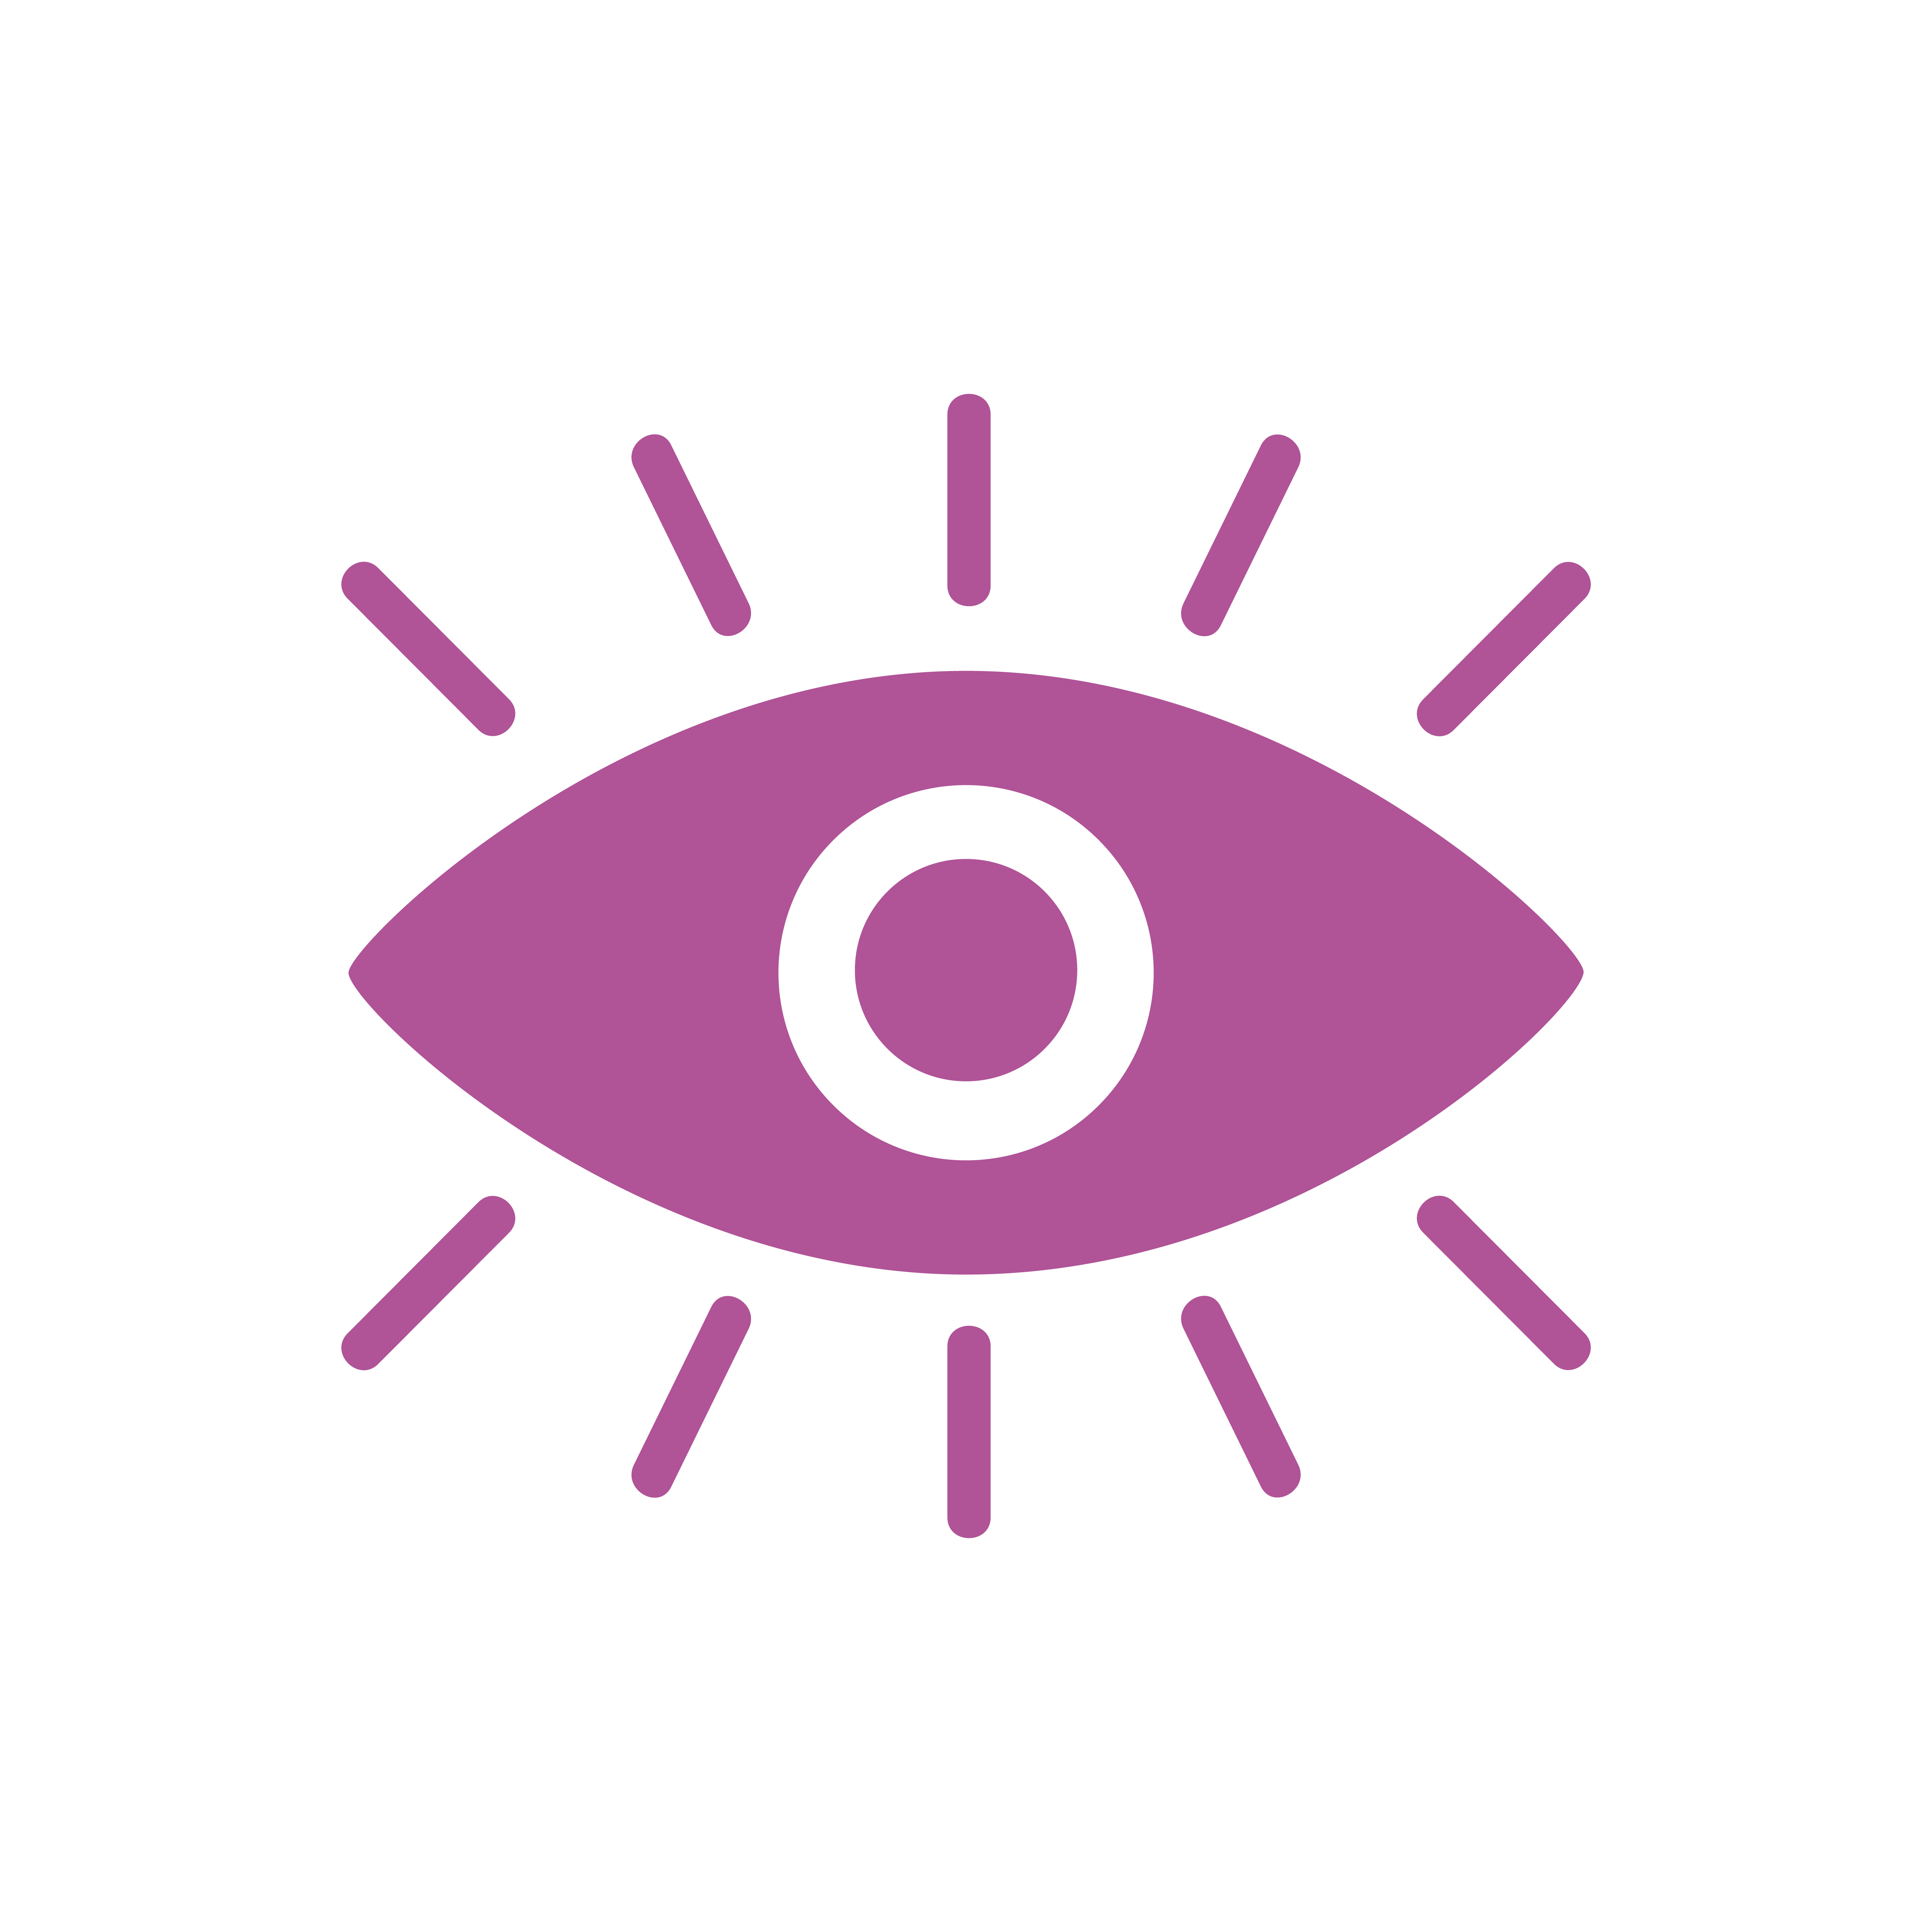 A Pink Eye Graphic Icon Download Free Vector Art Stock